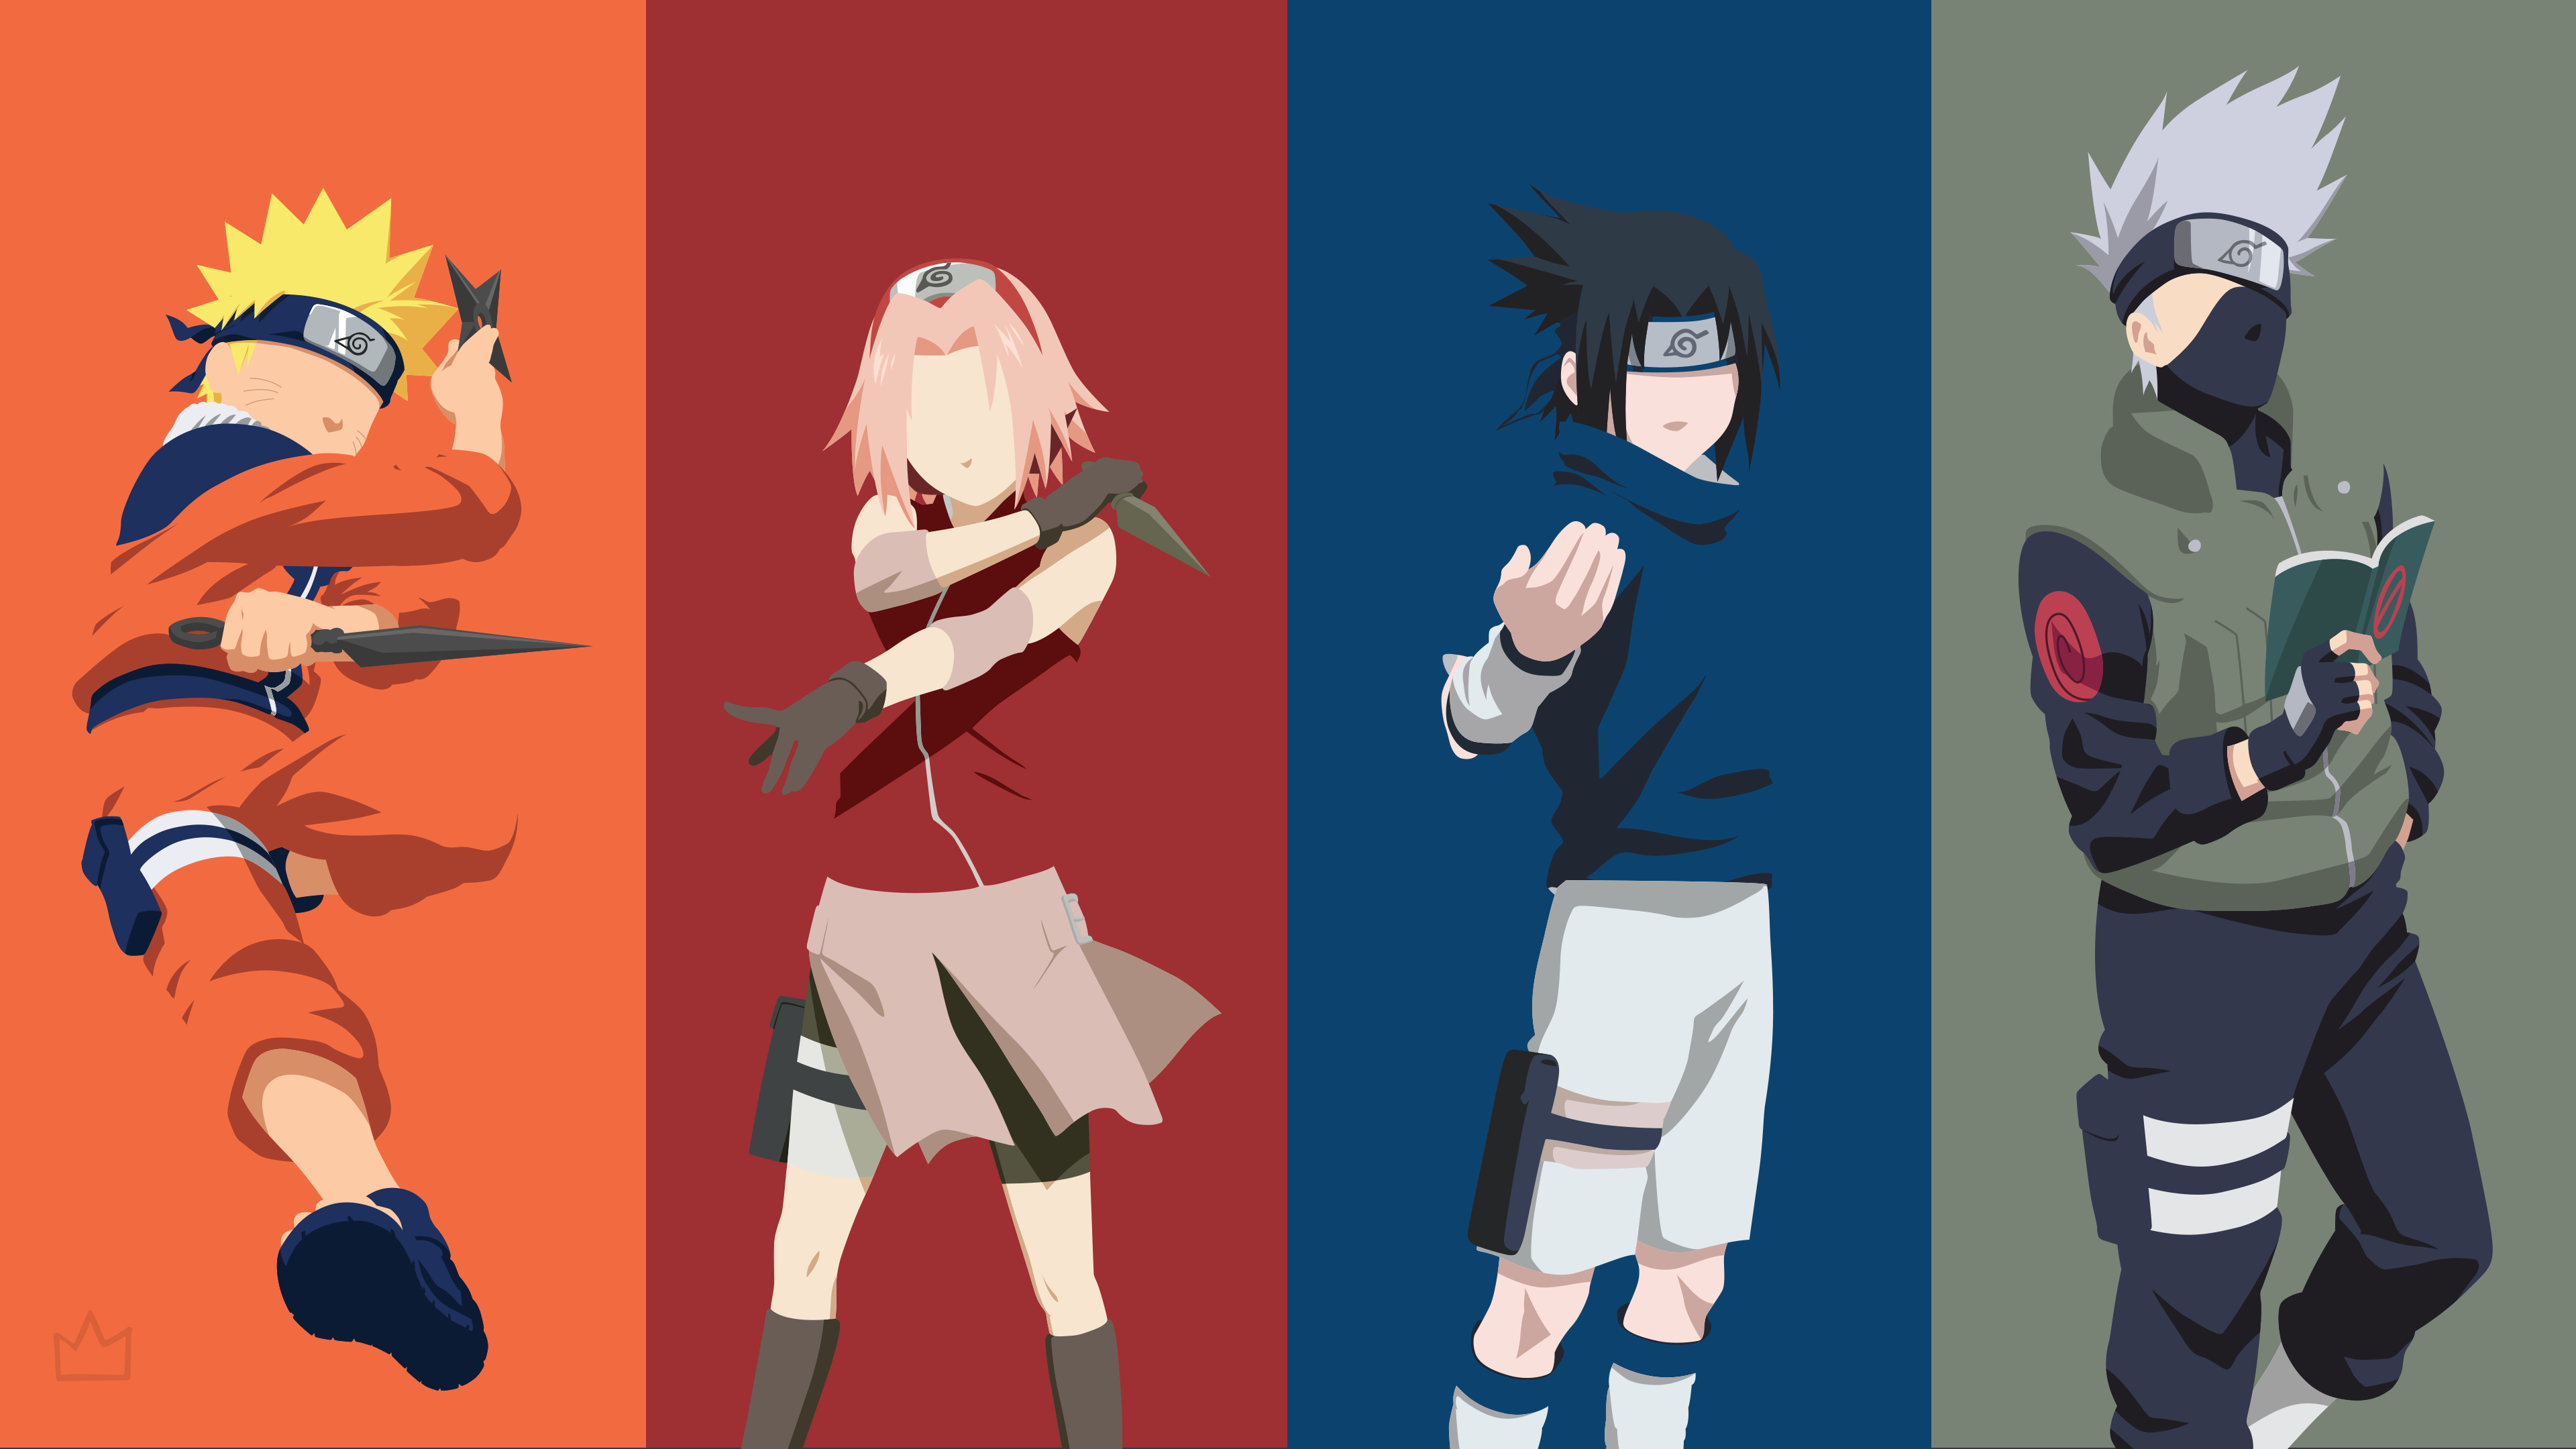 Top Wallpaper Naruto Team 7 - squad_7__naruto__by_klikster-d99ky7d  Perfect Image Reference.png